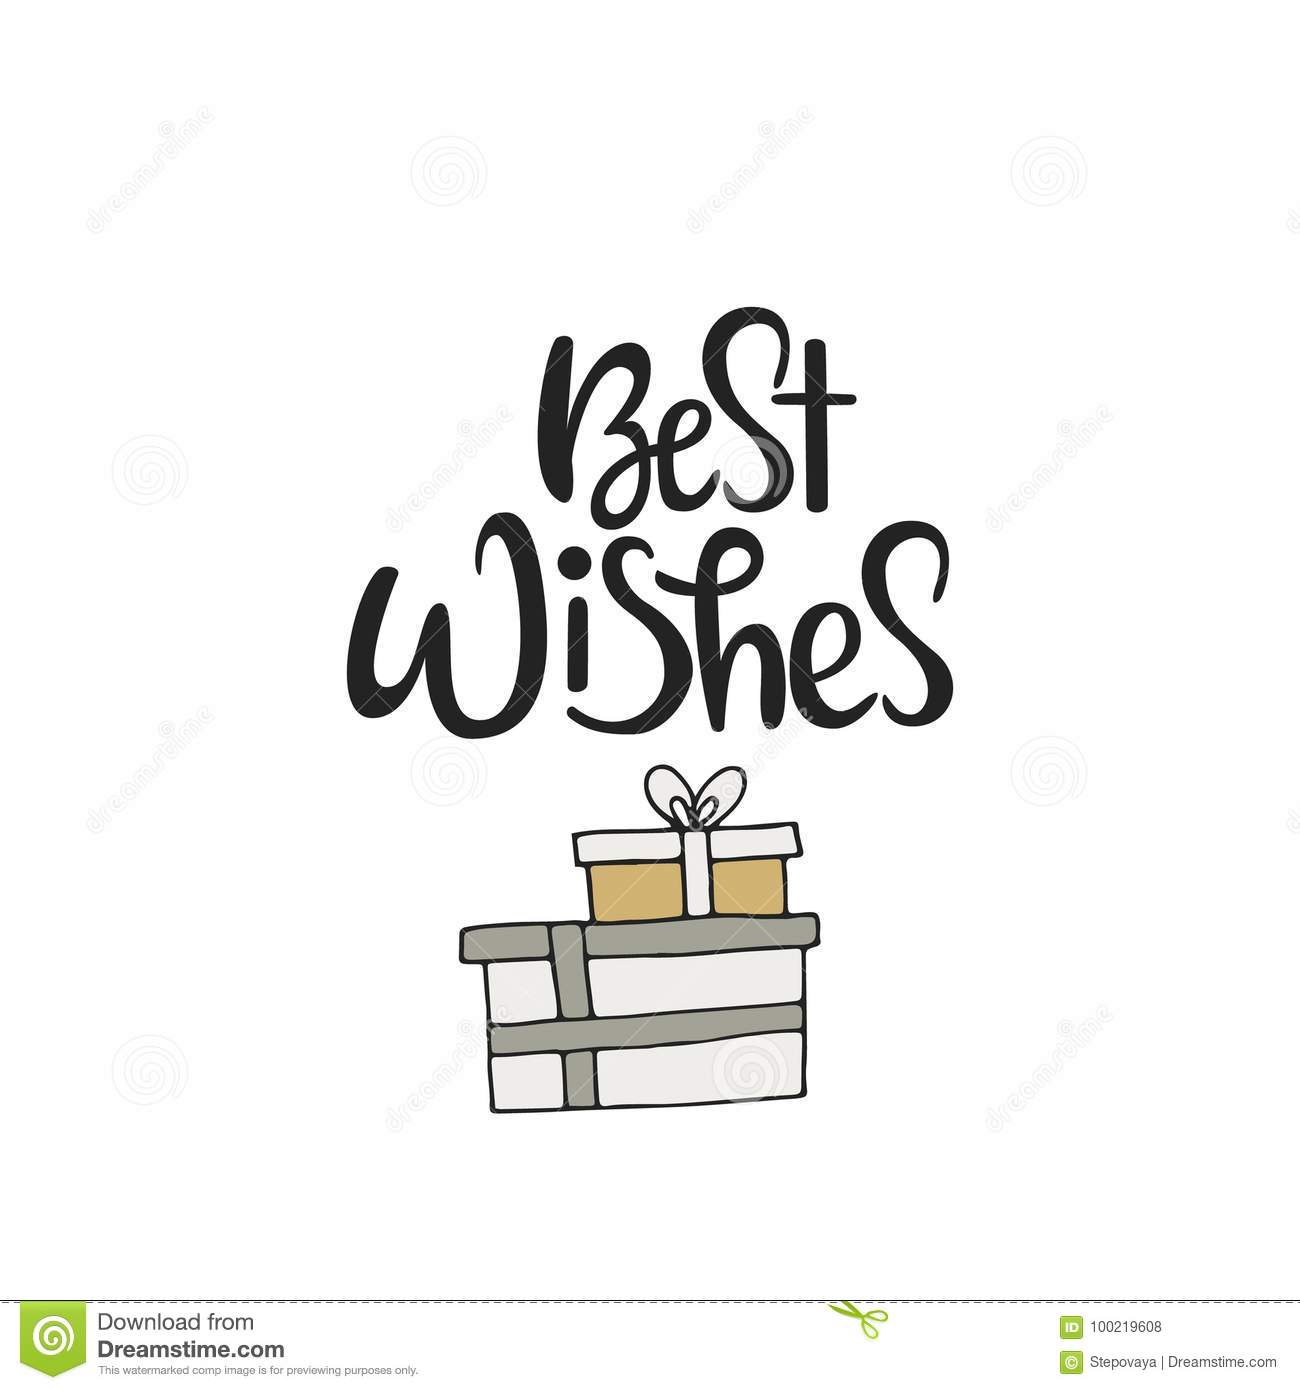 Best Wishes Cute Hand Drawn Christmas Card With Lettering And